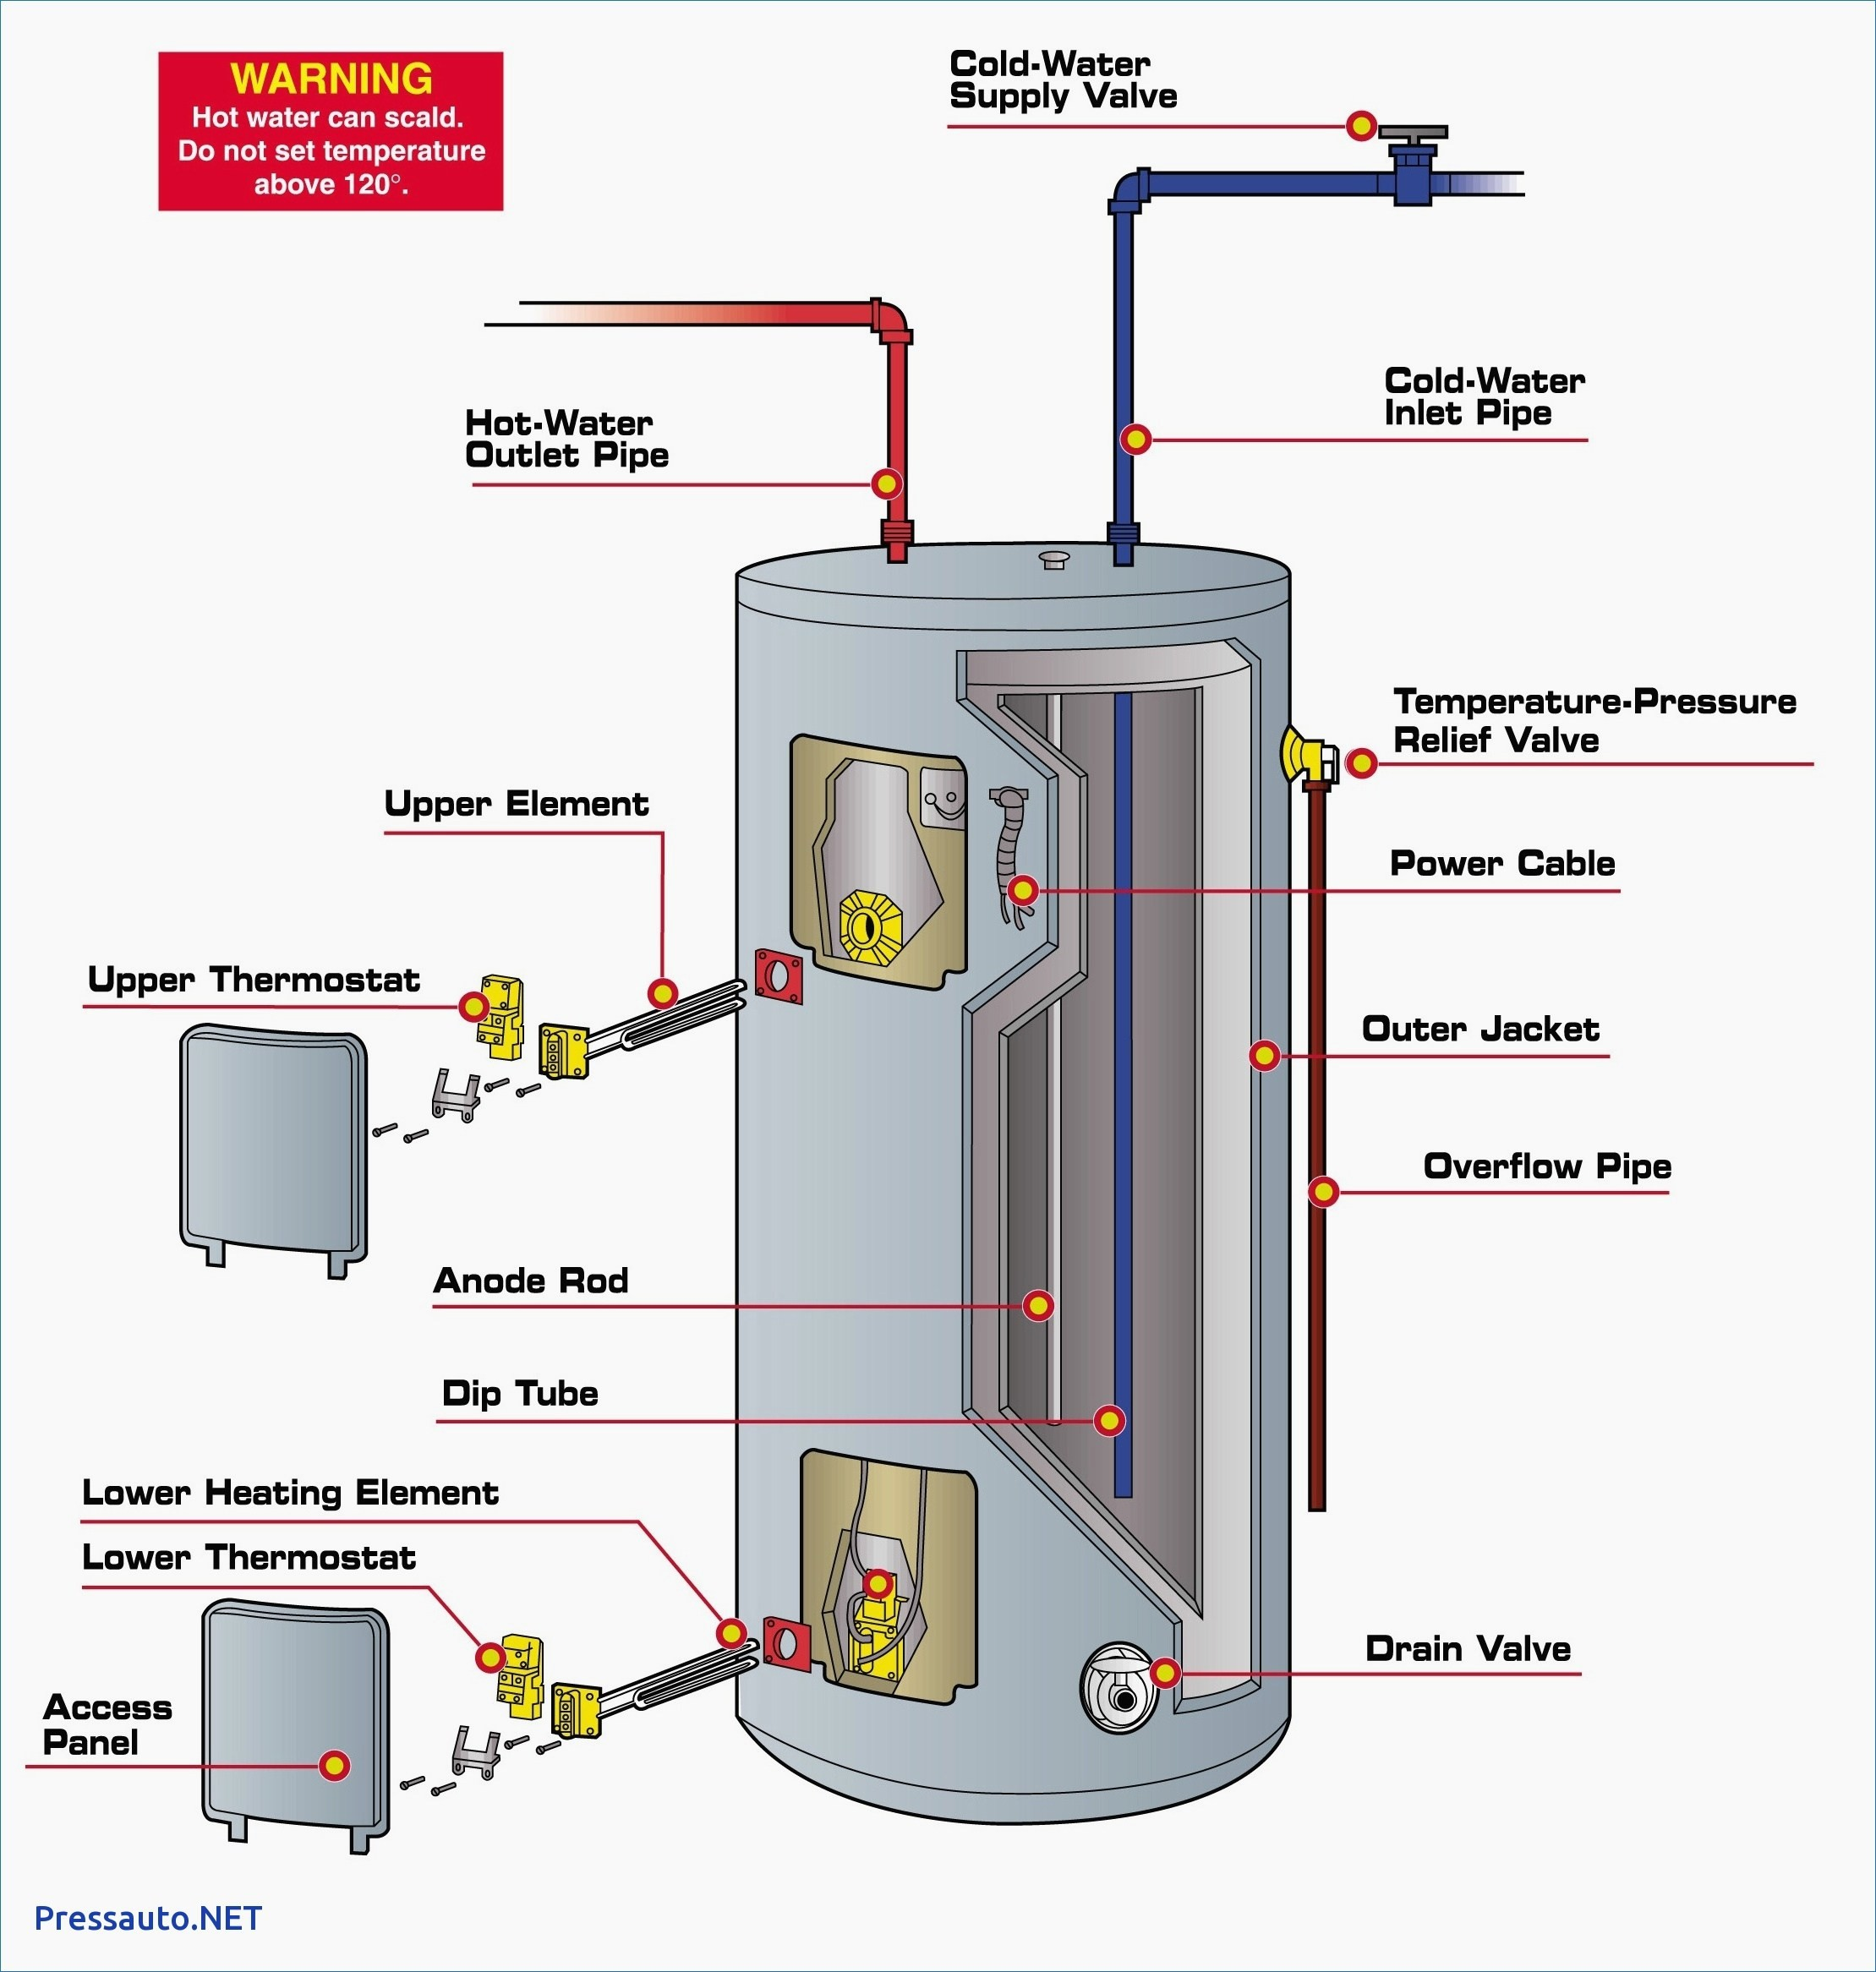 Atwood Rv Water Heater Parts Diagram Awesome atwood Water Heater Wiring Diagram Everything You Of Atwood Rv Water Heater Parts Diagram